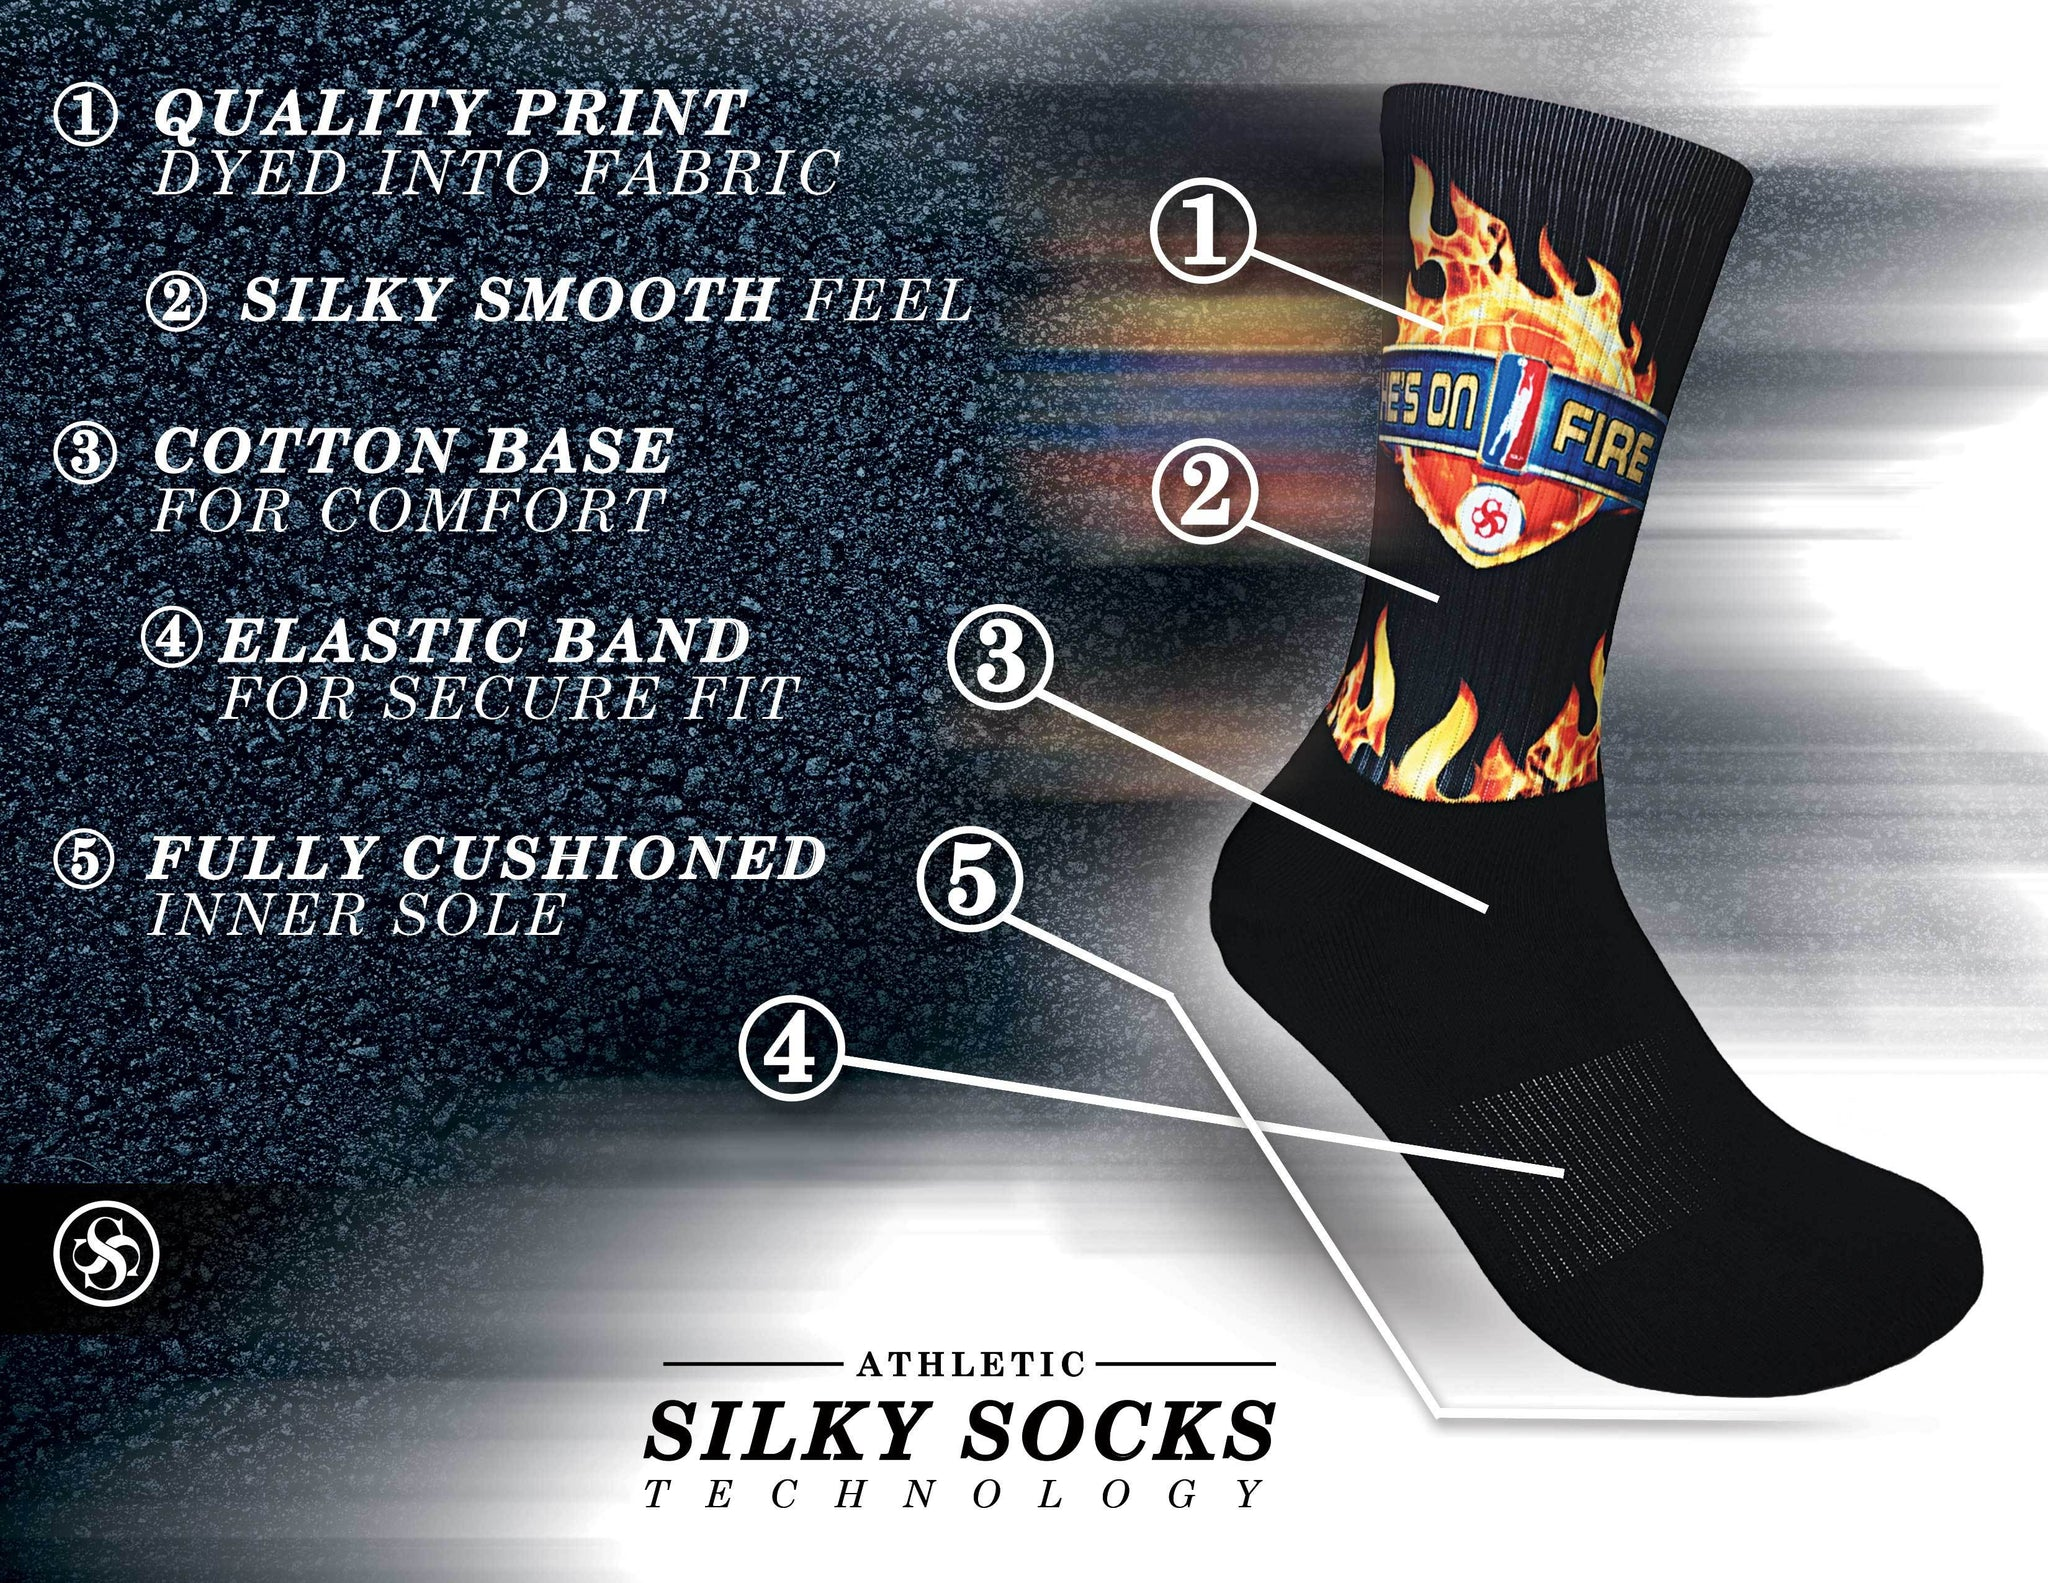 Athletic White Socks | Silky Socks